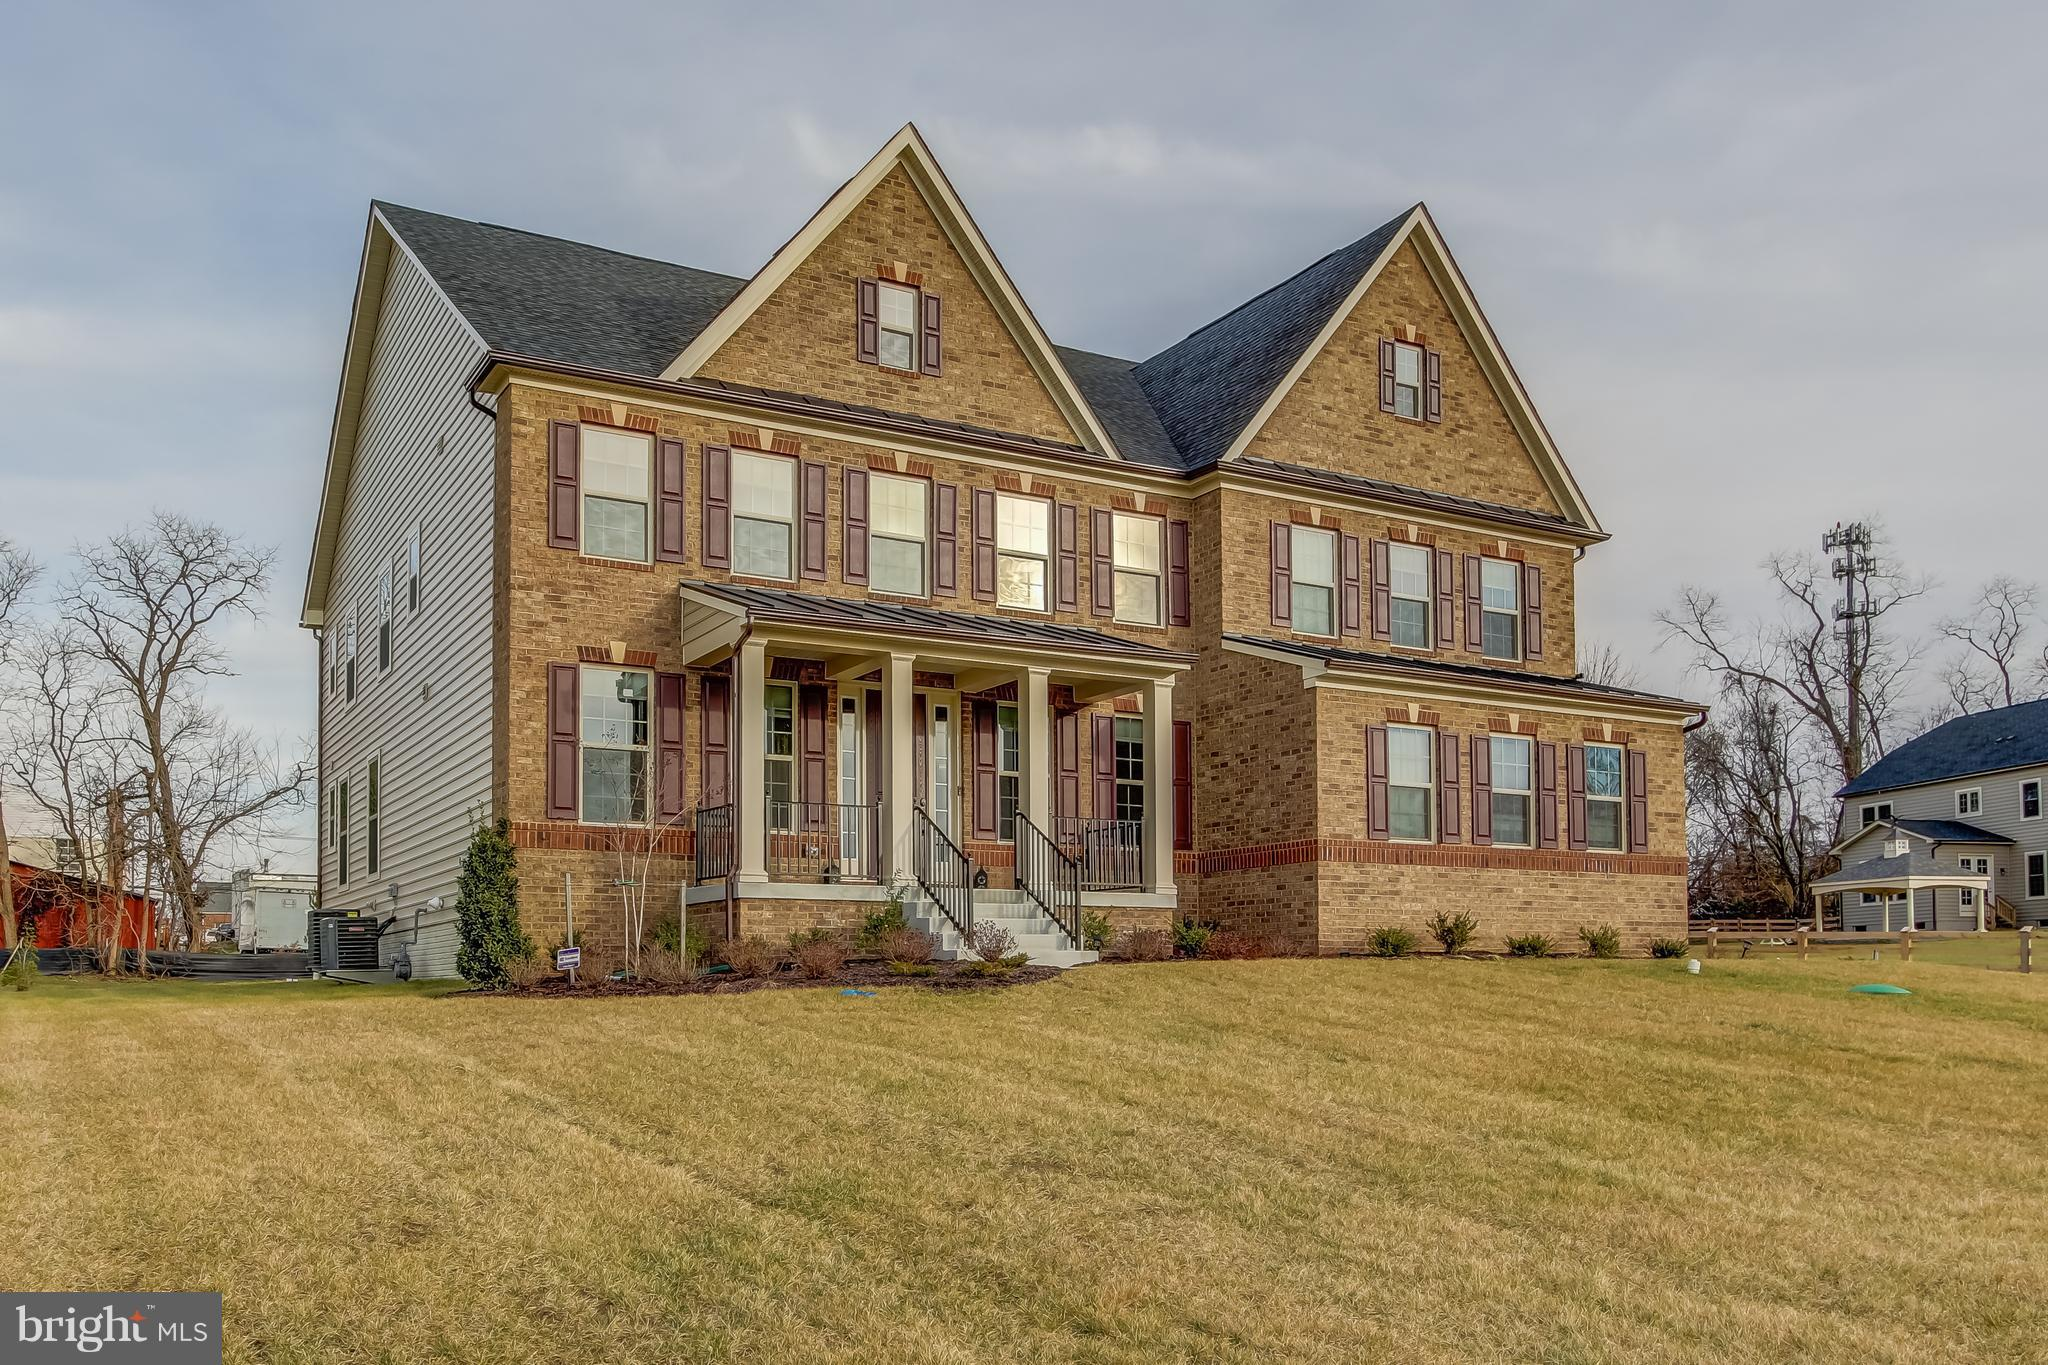 7025 HIGGINS ROAD, LAYTONSVILLE, MD 20882